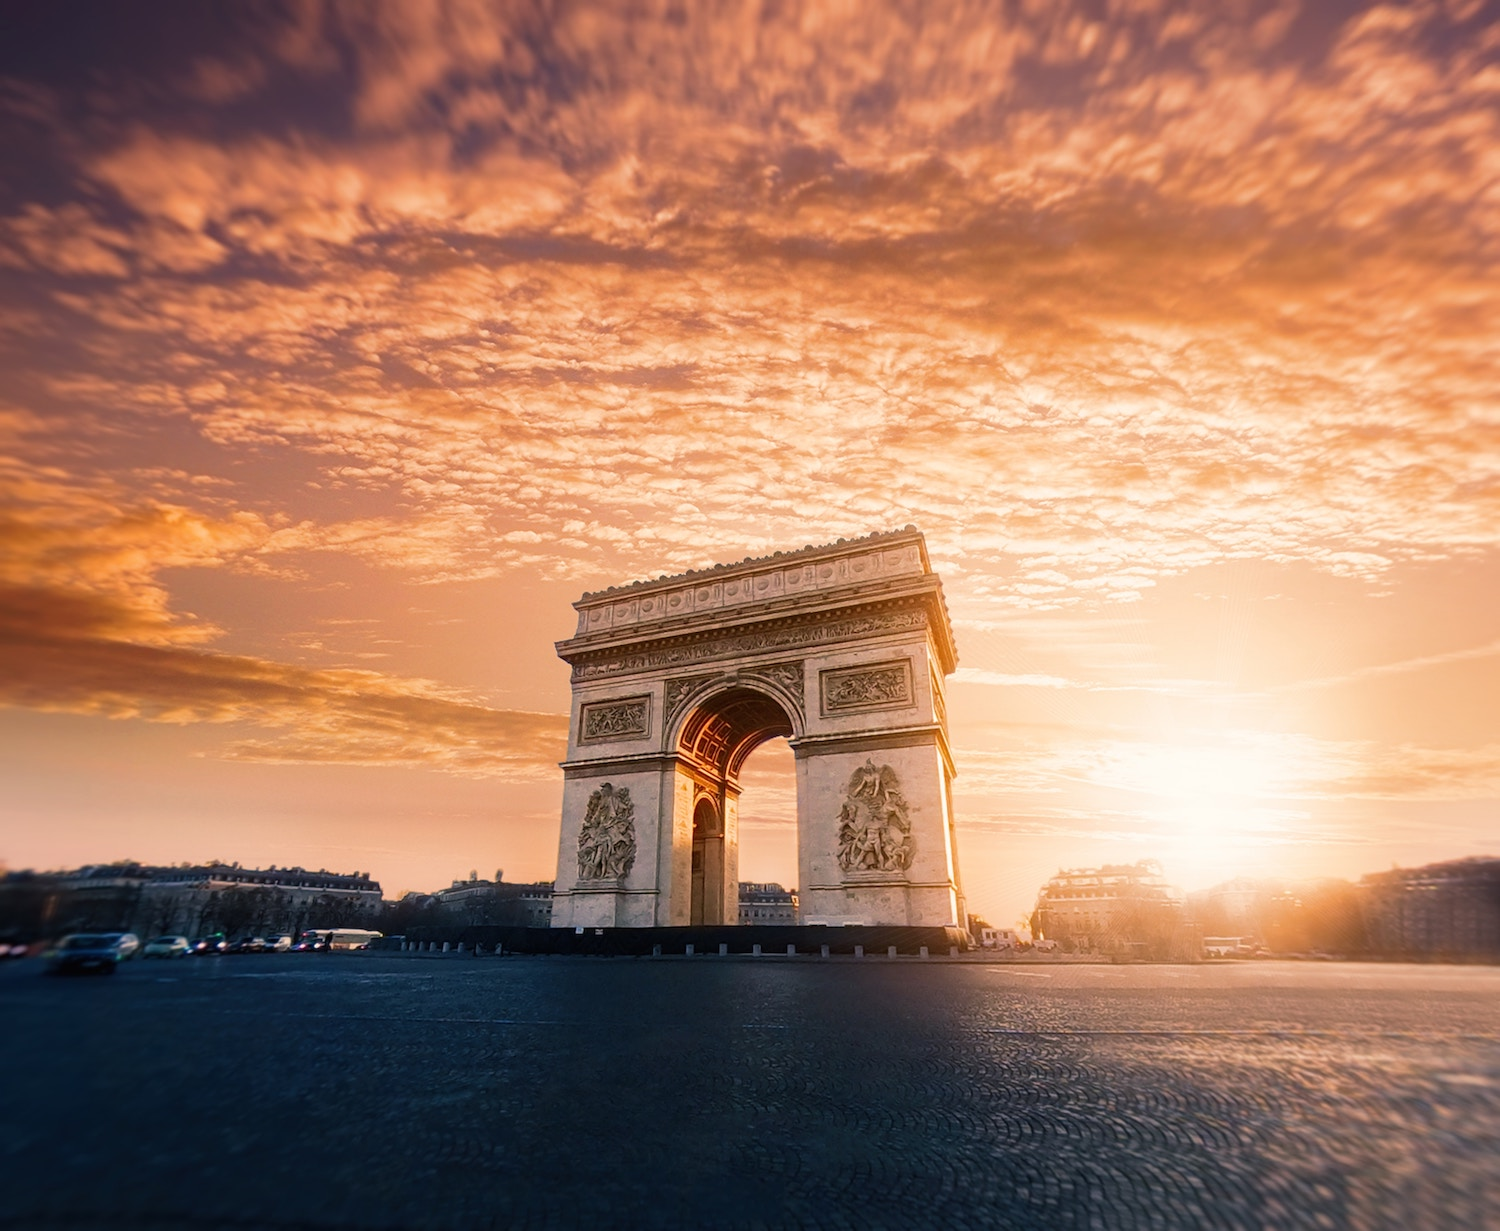 Sunset in Paris, Design Ecosystem